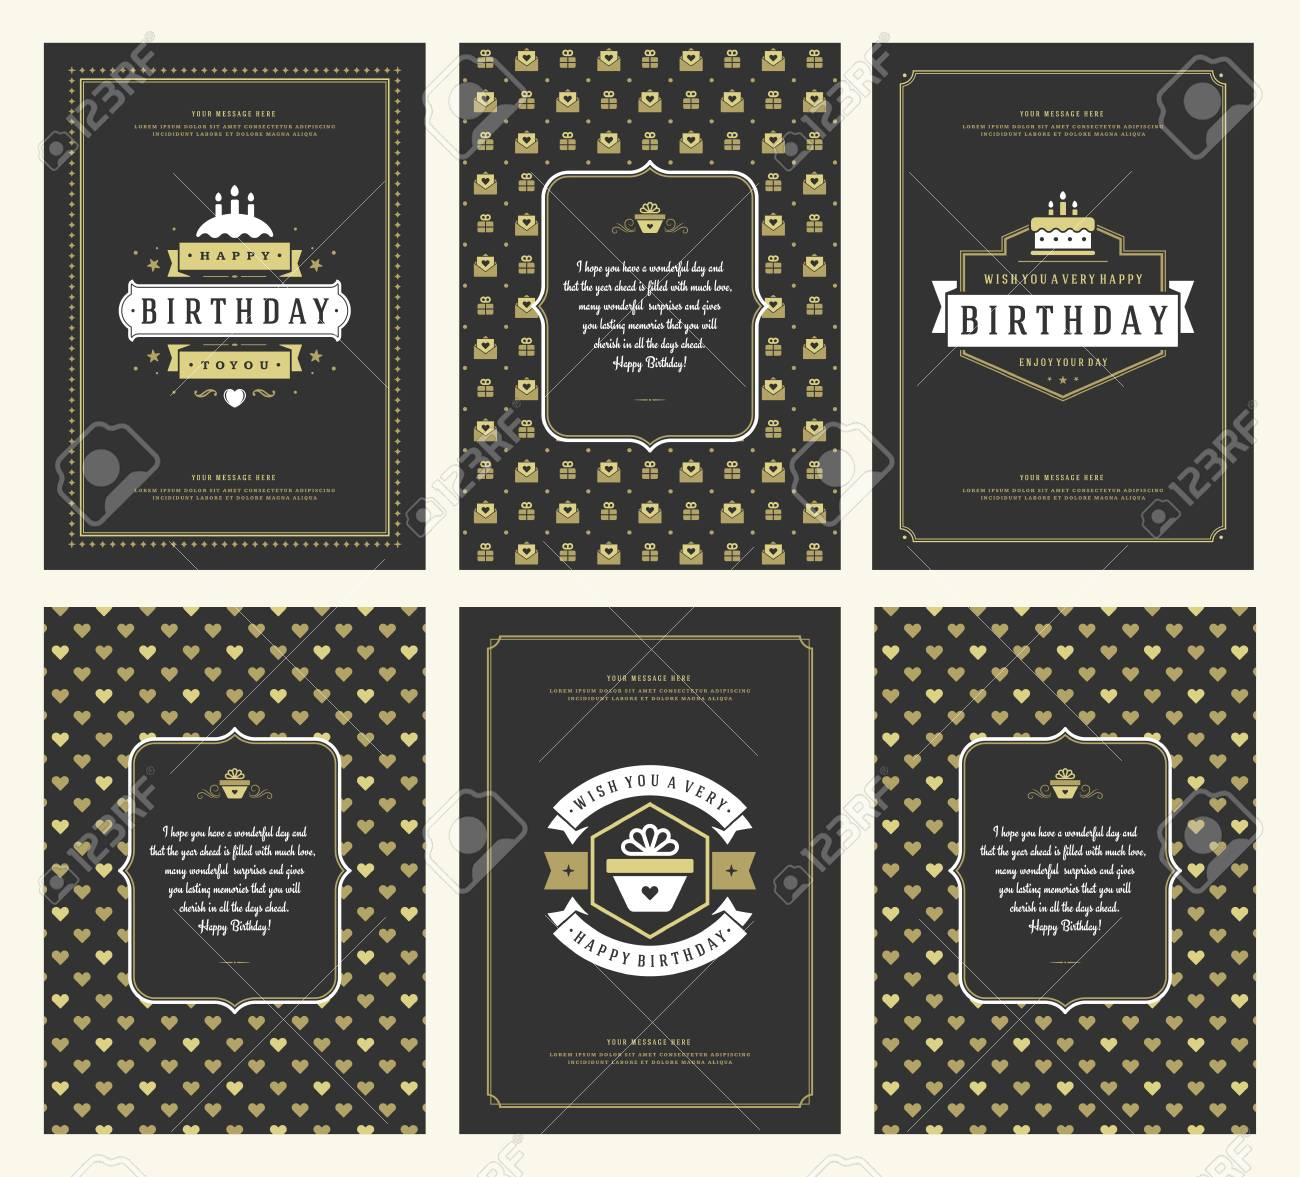 Happy Birthday Greeting Cards Typographic Design Set Vector Illustration Vintage Badge Or Label With